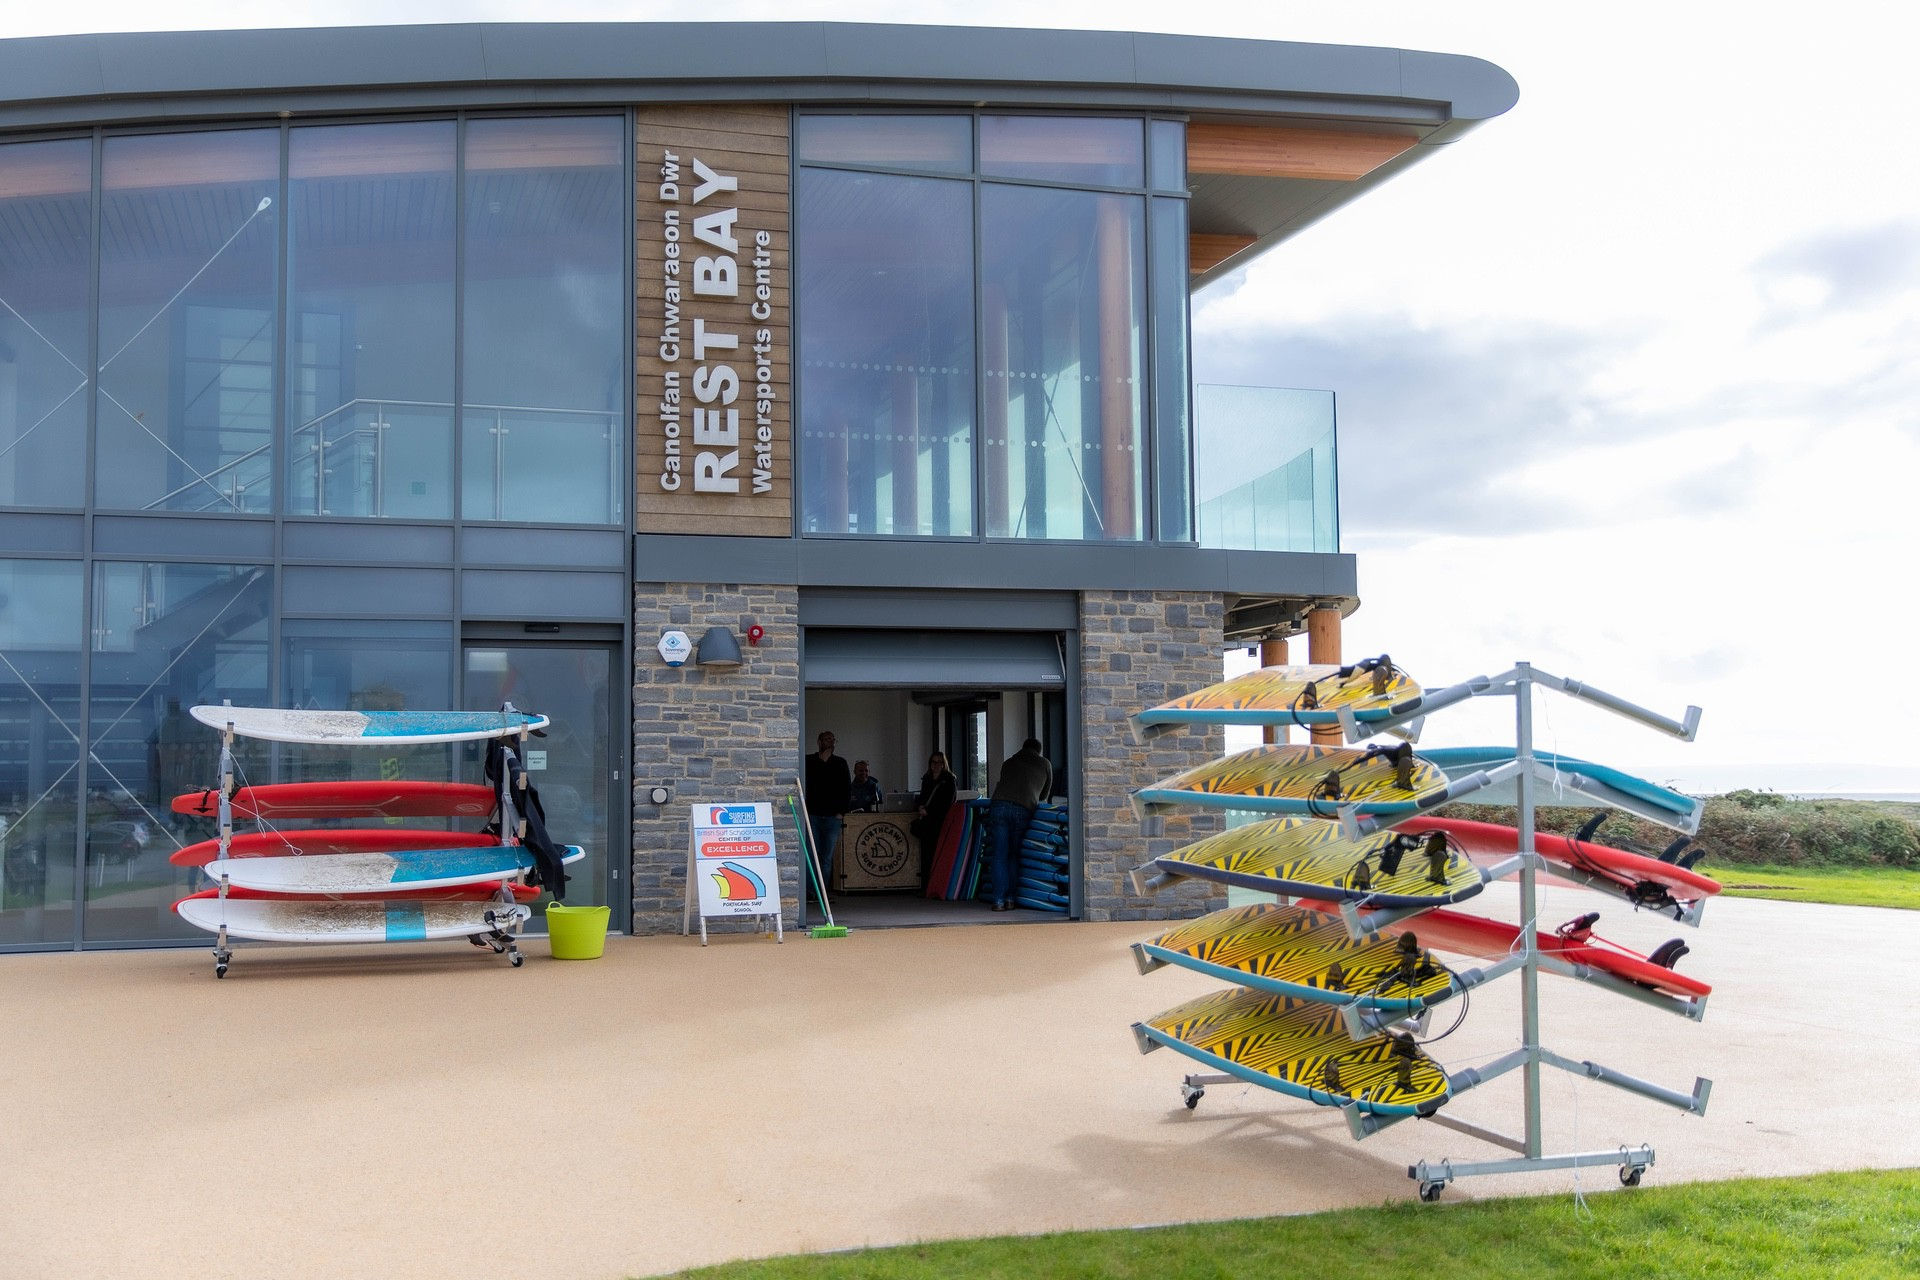 Rest Bay Watersports Centre